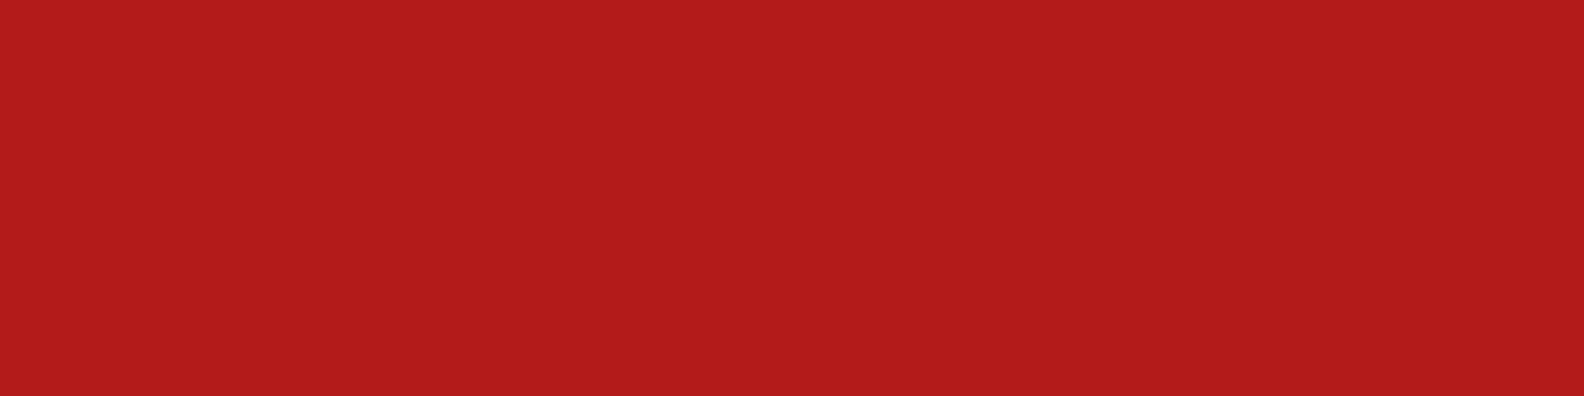 1584x396 Cornell Red Solid Color Background